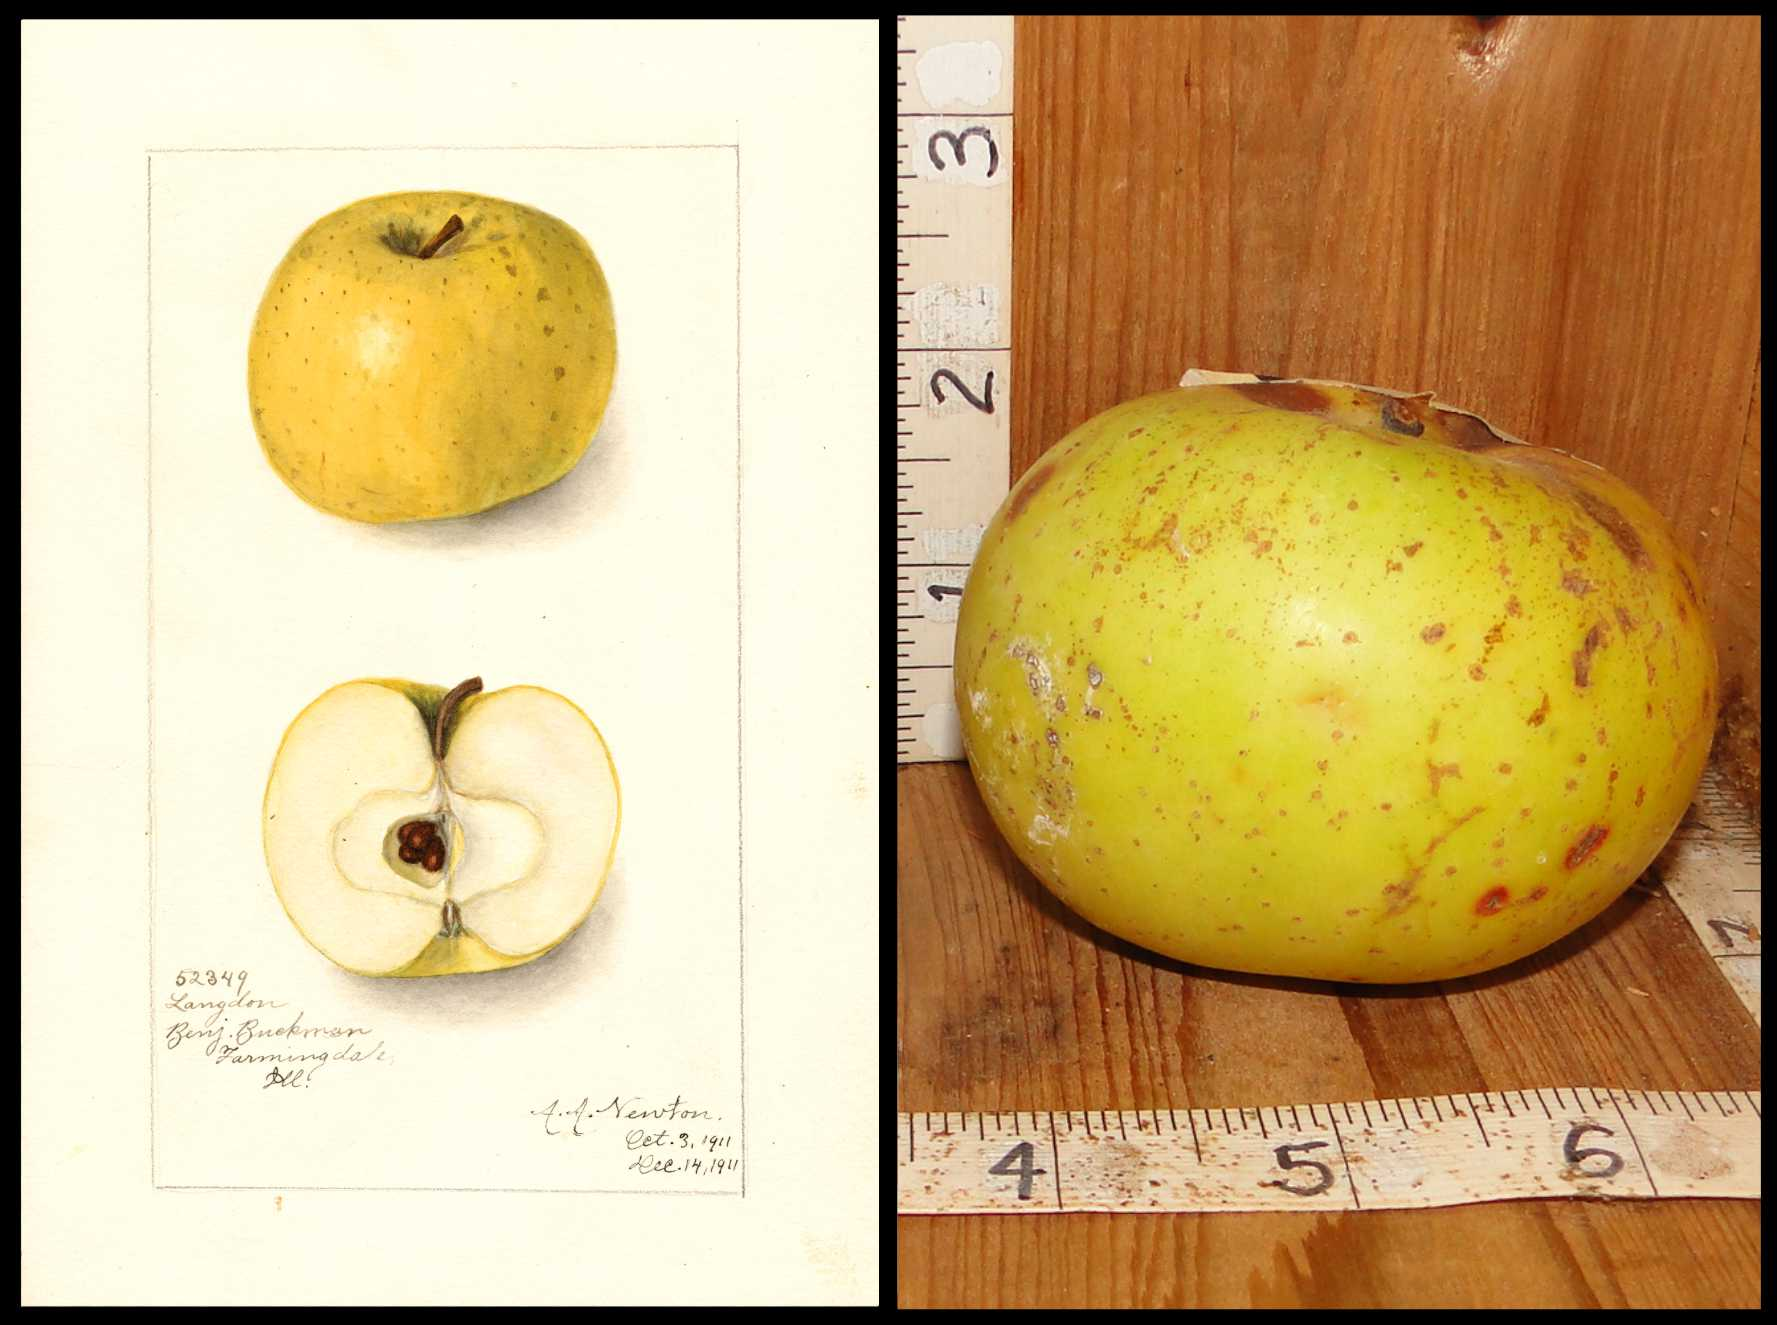 yellow apple with rough brown medium sized spots